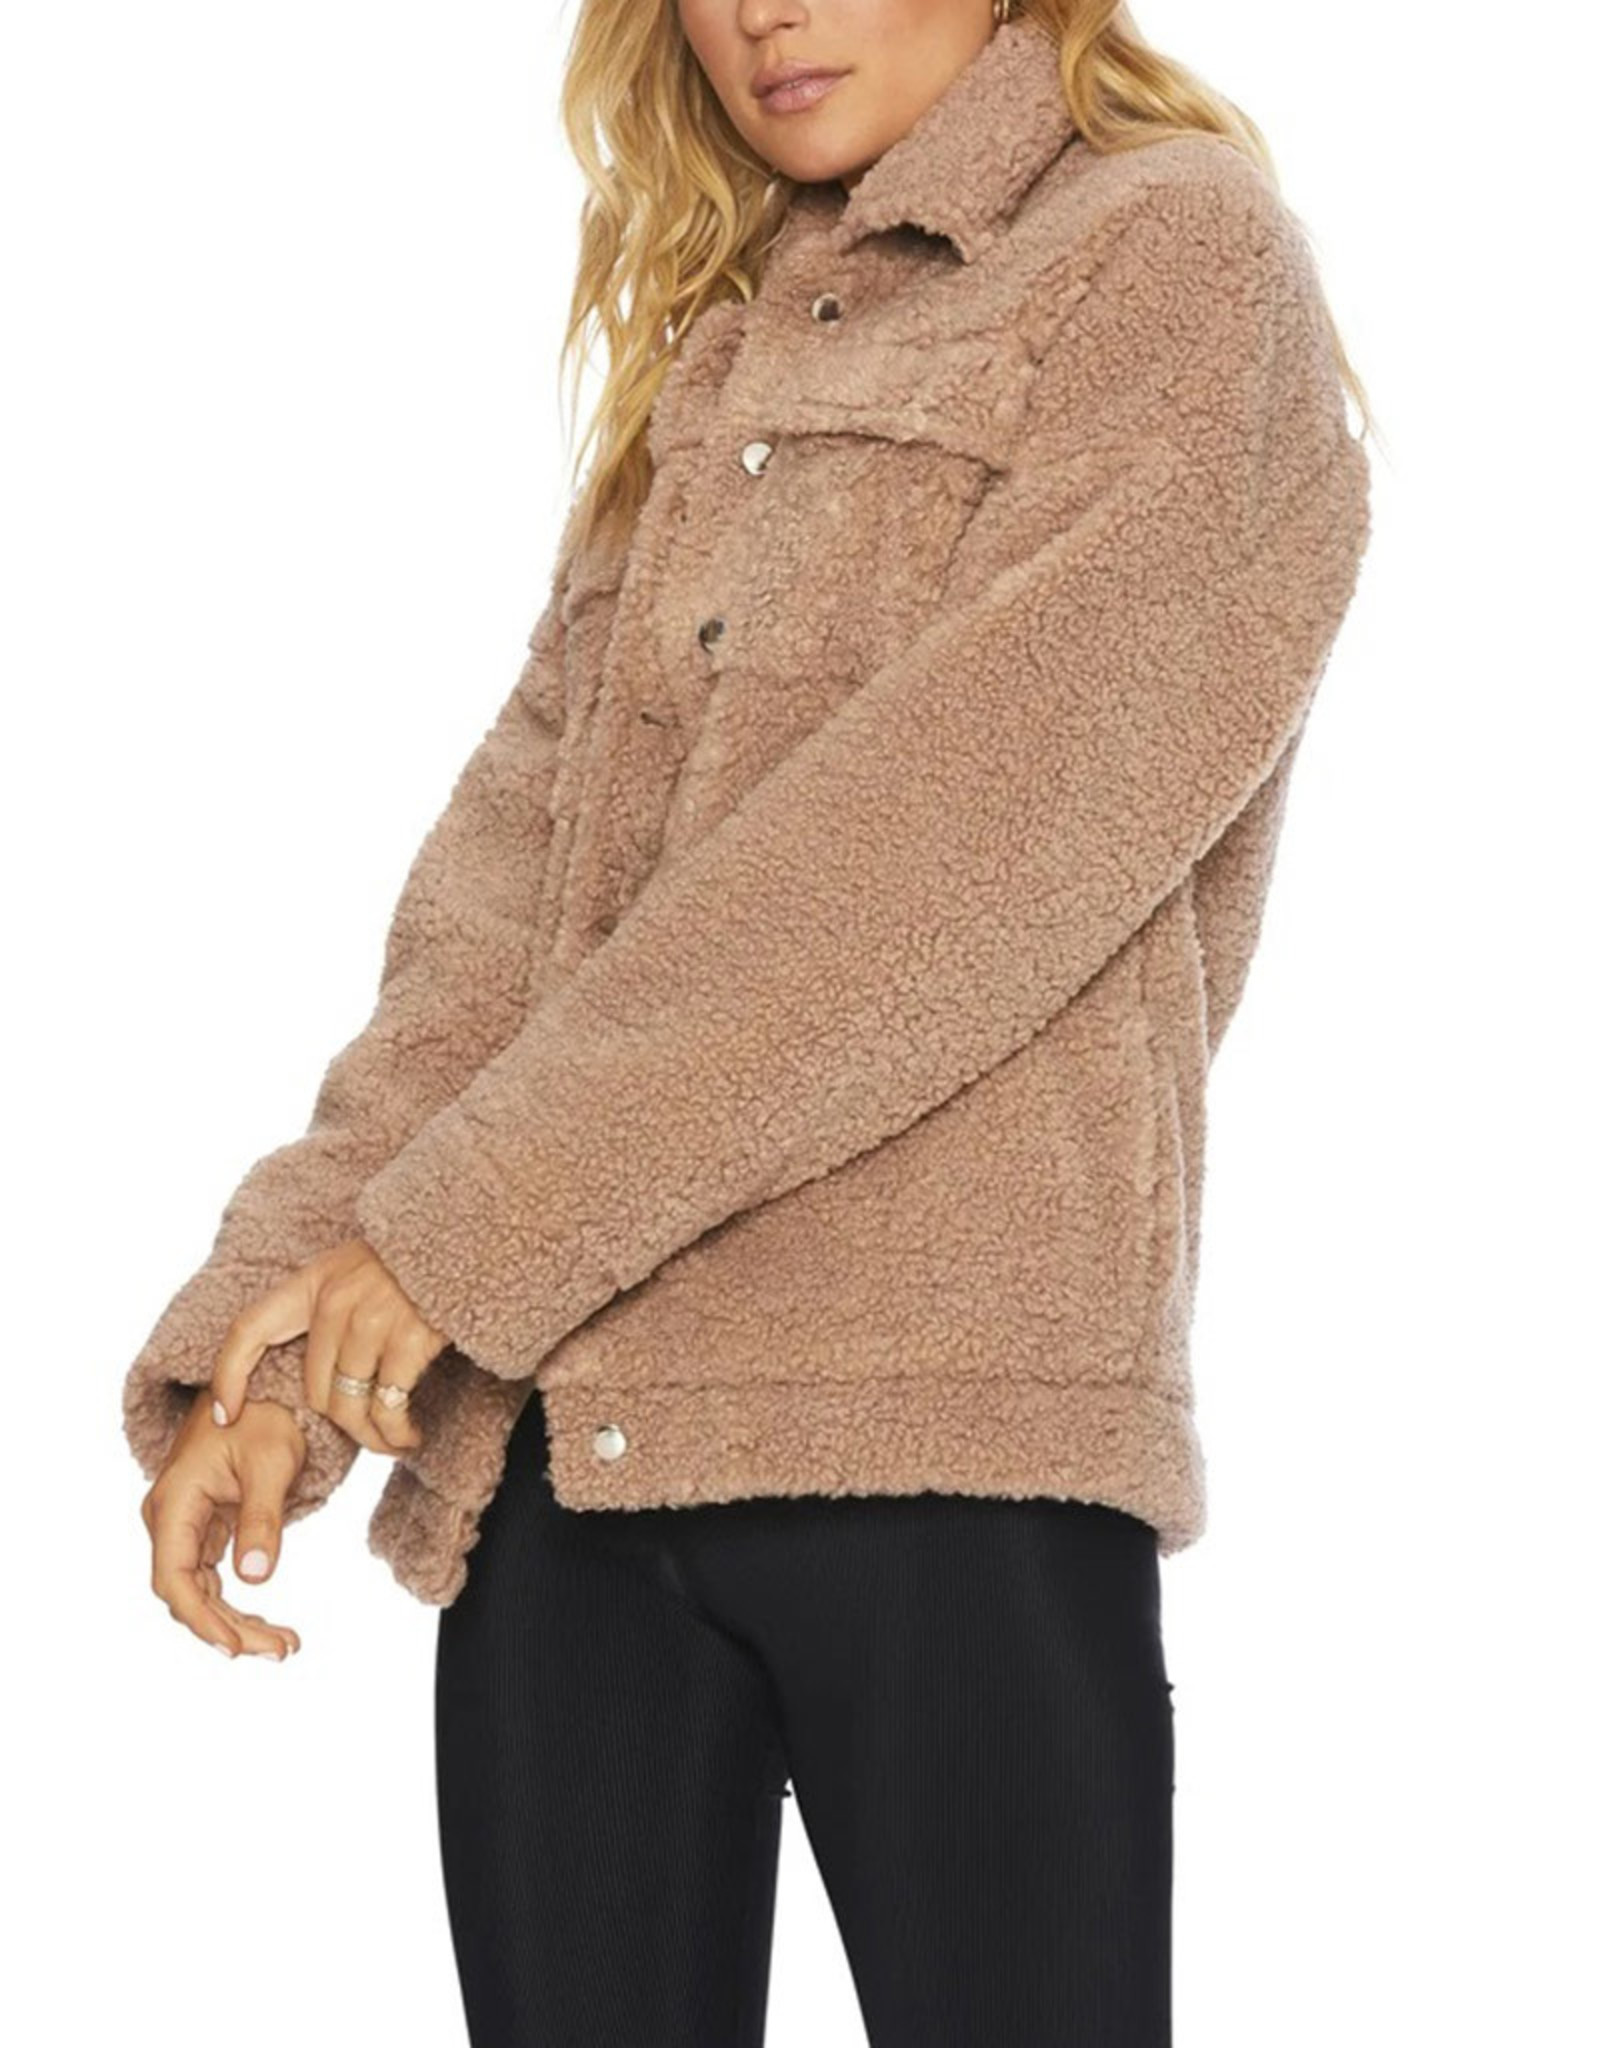 BEACH RIOT LAURIE JACKET